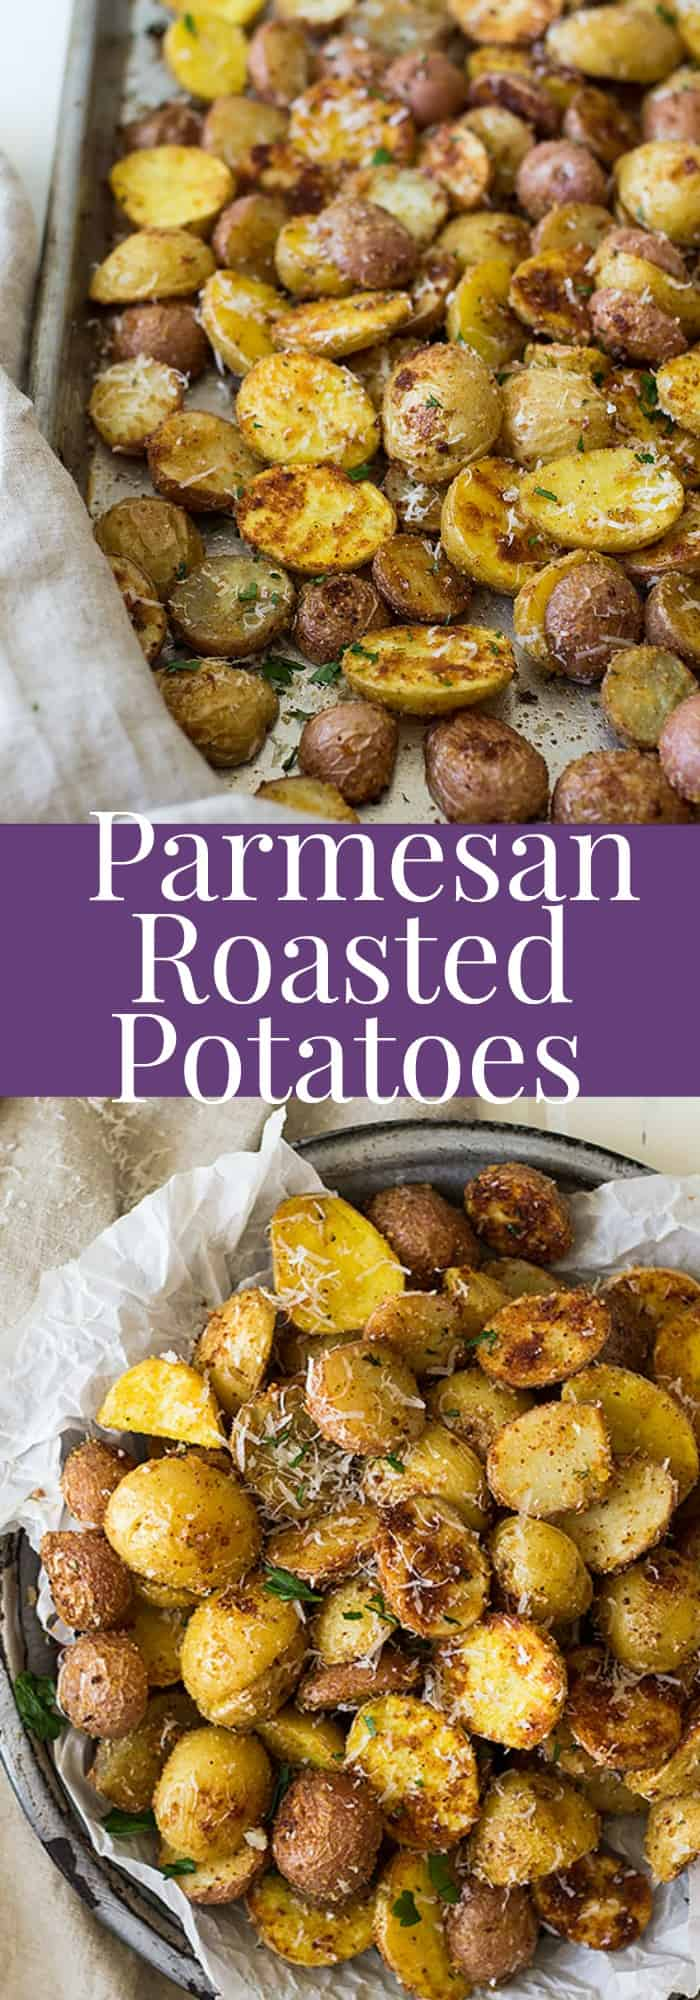 These Roasted Parmesan Potatoes are a perfect side dish for dinner. They are crispy on the outside and creamy on the inside. | www.countrysidecravings.com